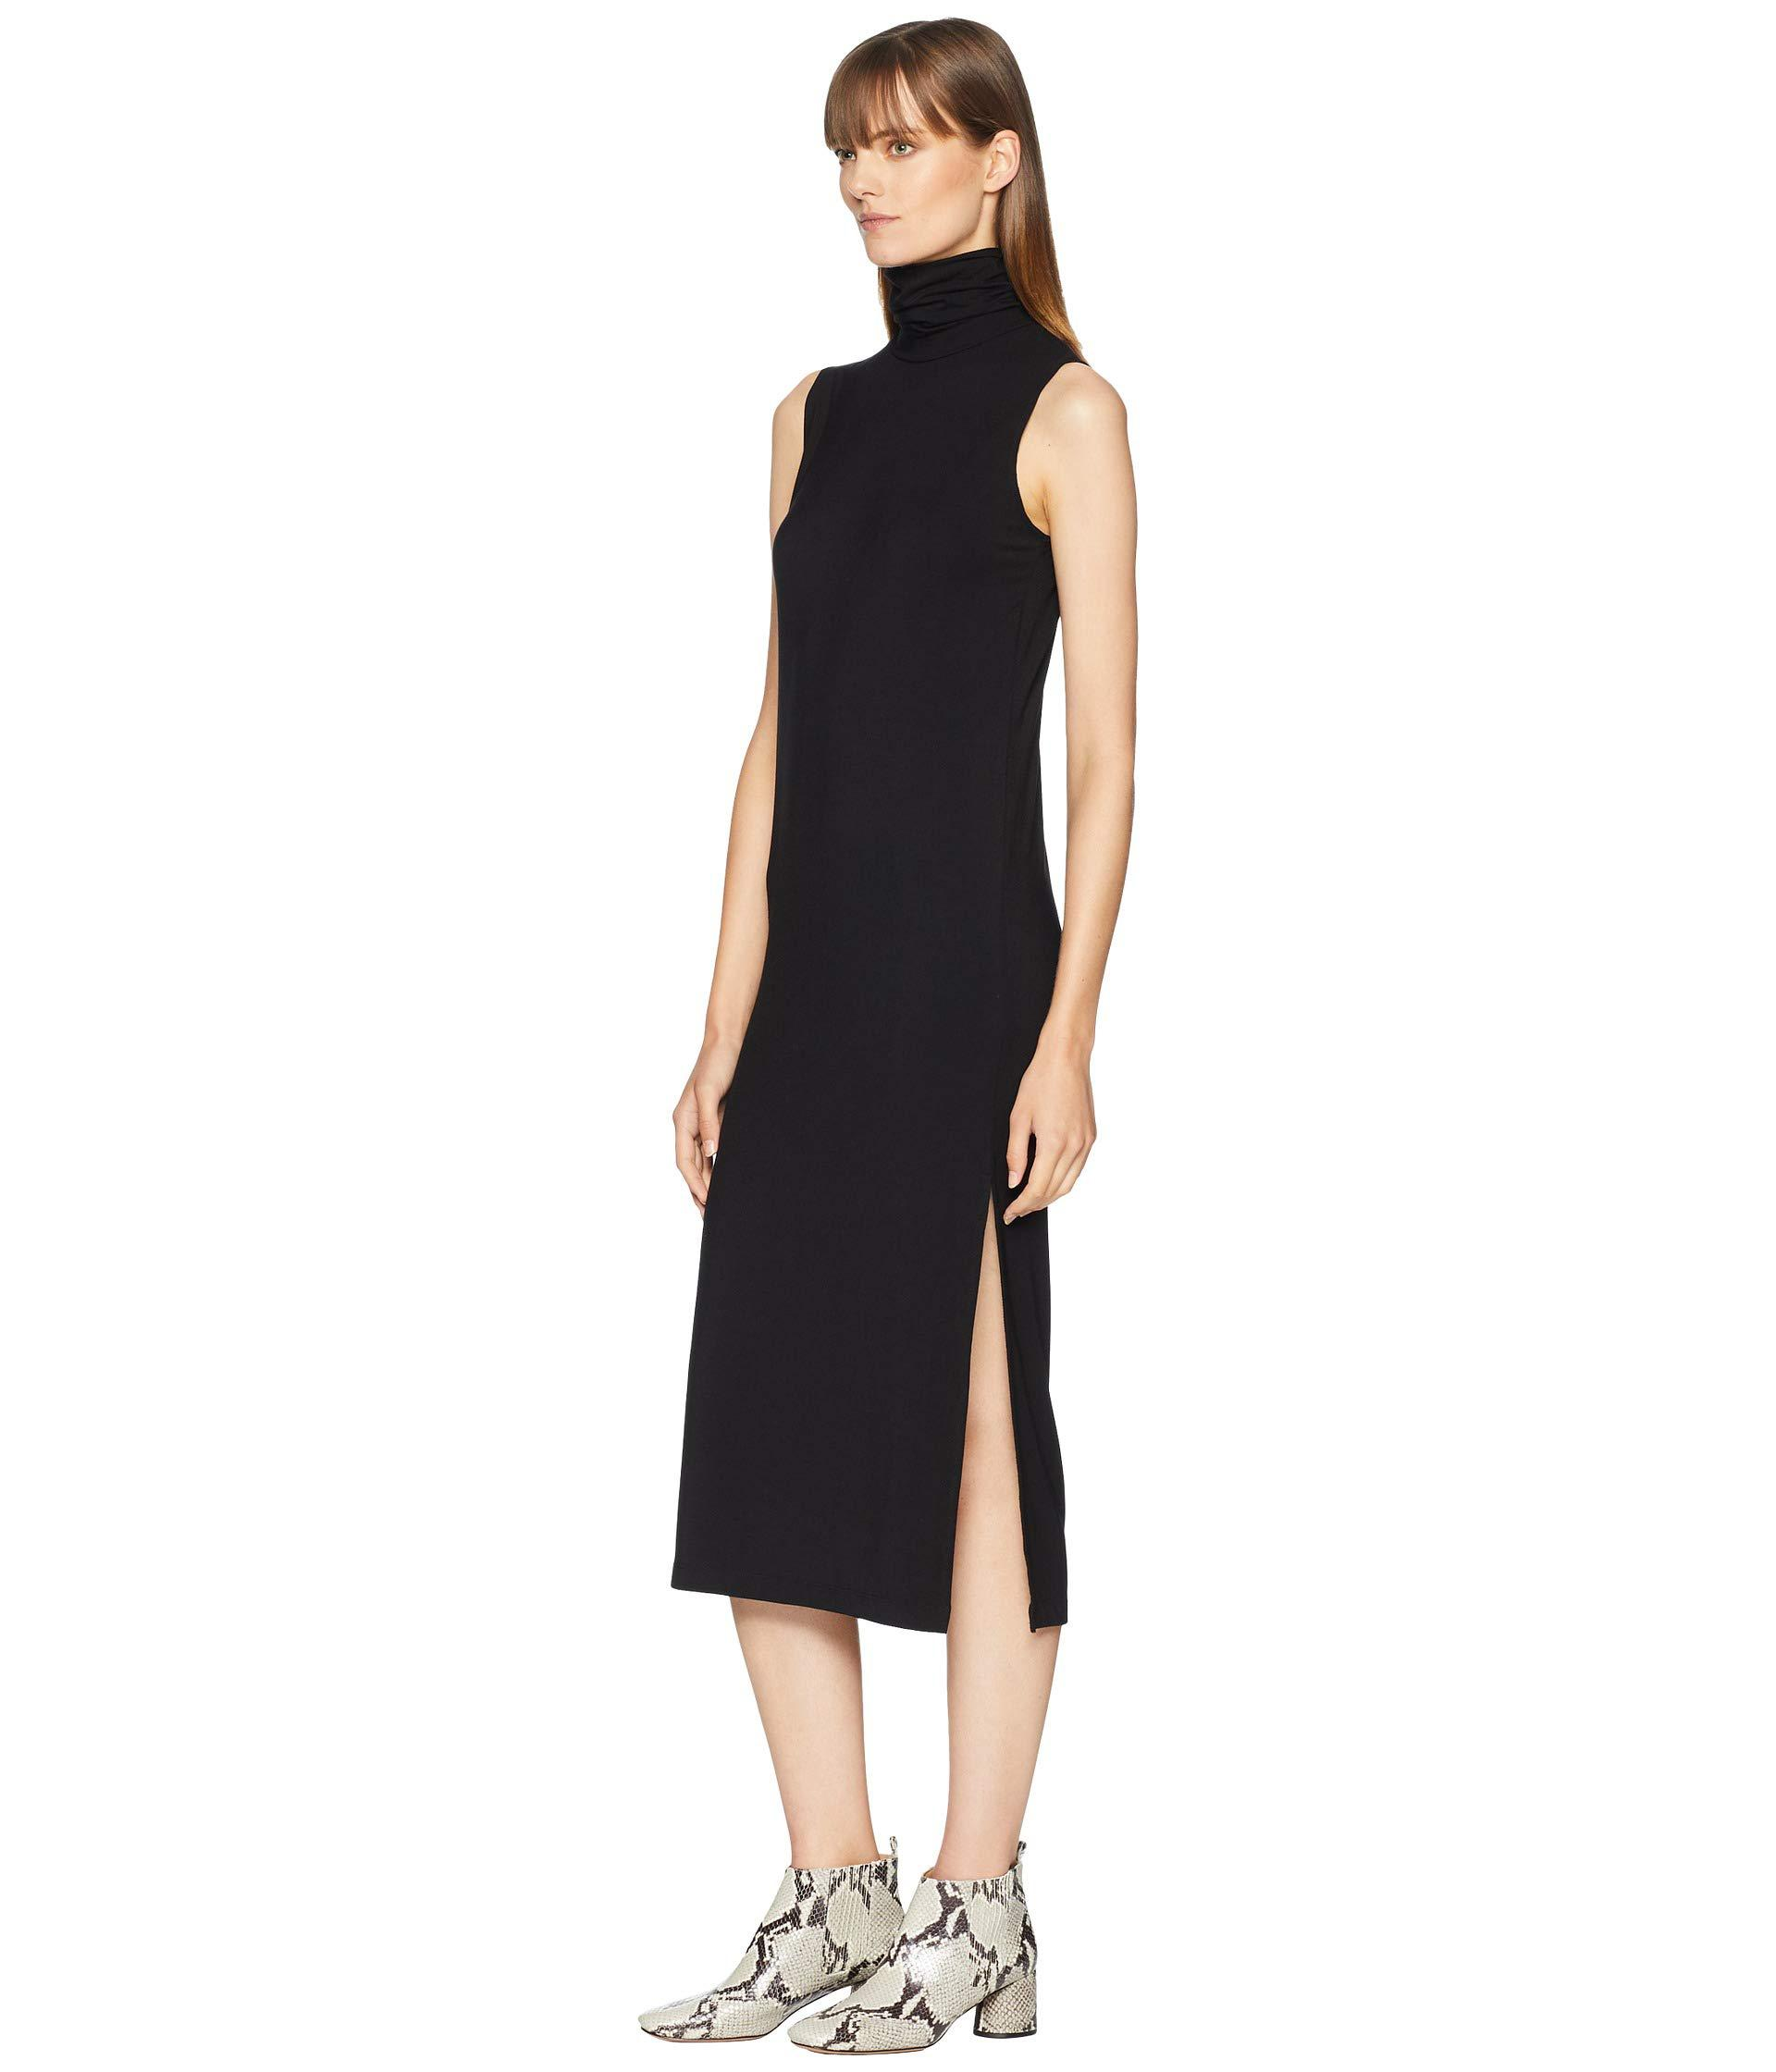 b0059a4d229 Lyst - Vince Sleeveless Turtleneck Dress (black) Women s Dress in Black -  Save 13.333333333333329%